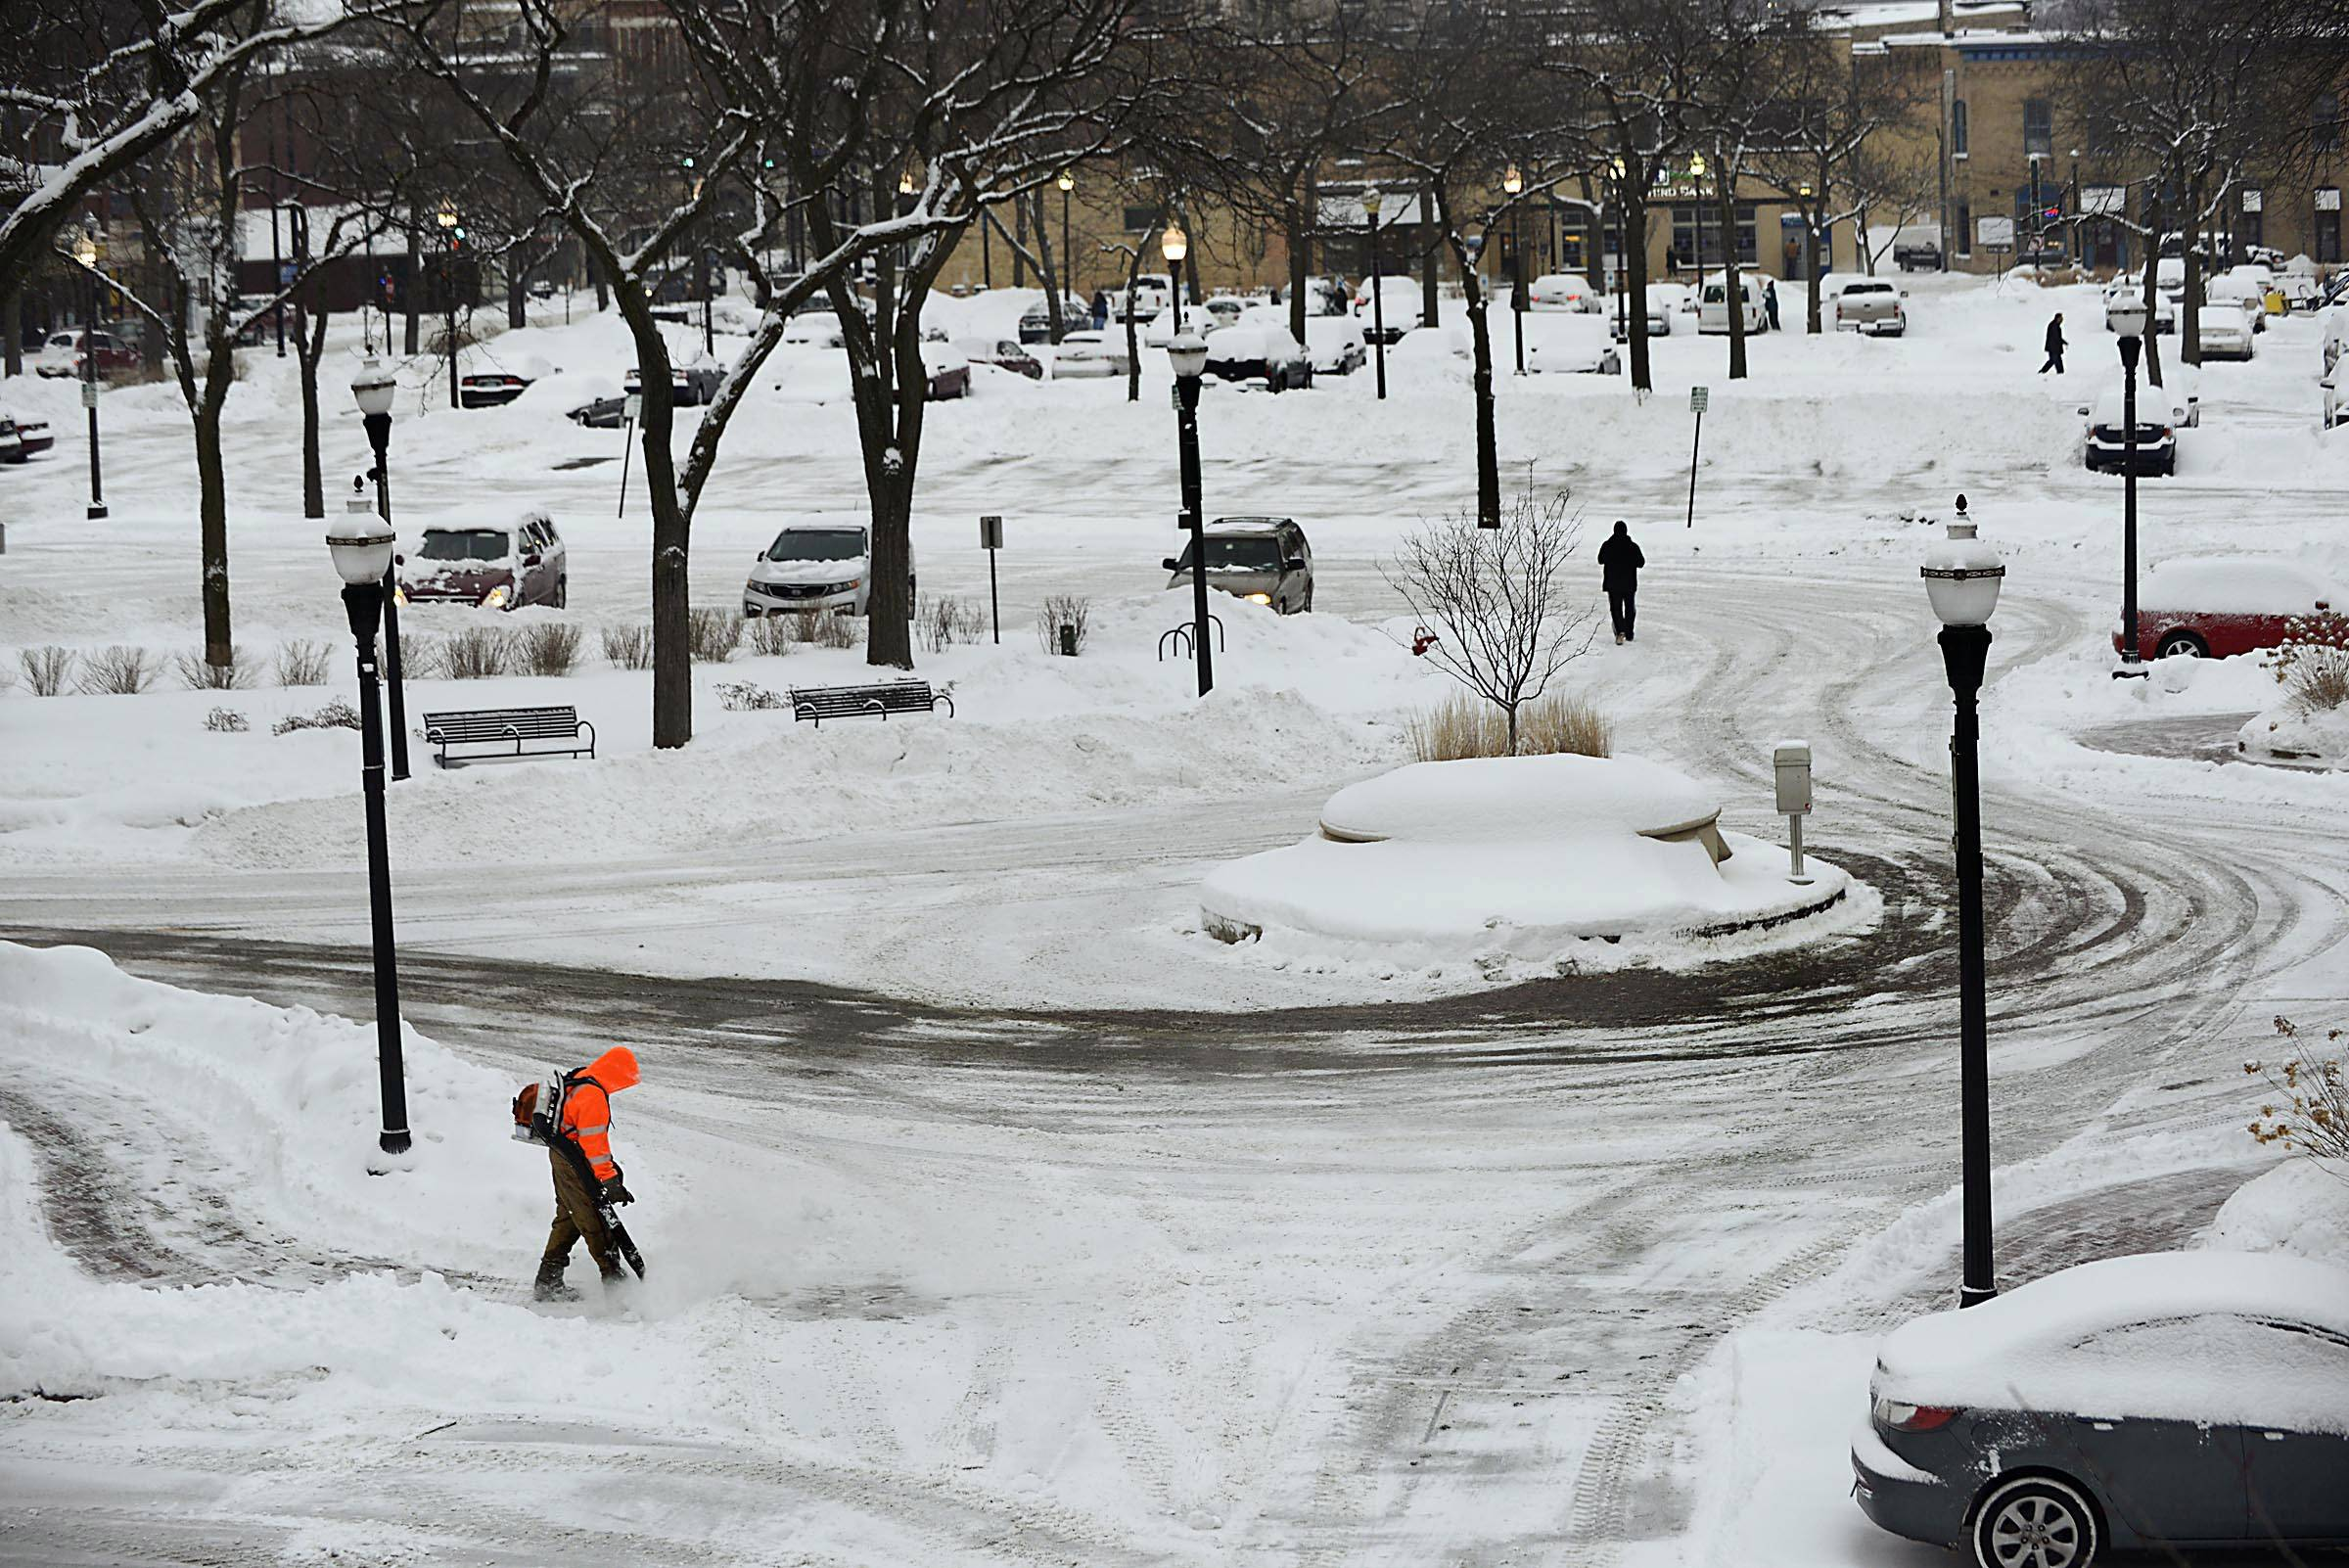 A worker uses a leaf blower to clear late afternoon snow from already-plowed sidewalks at Elgin City Hall Monday.